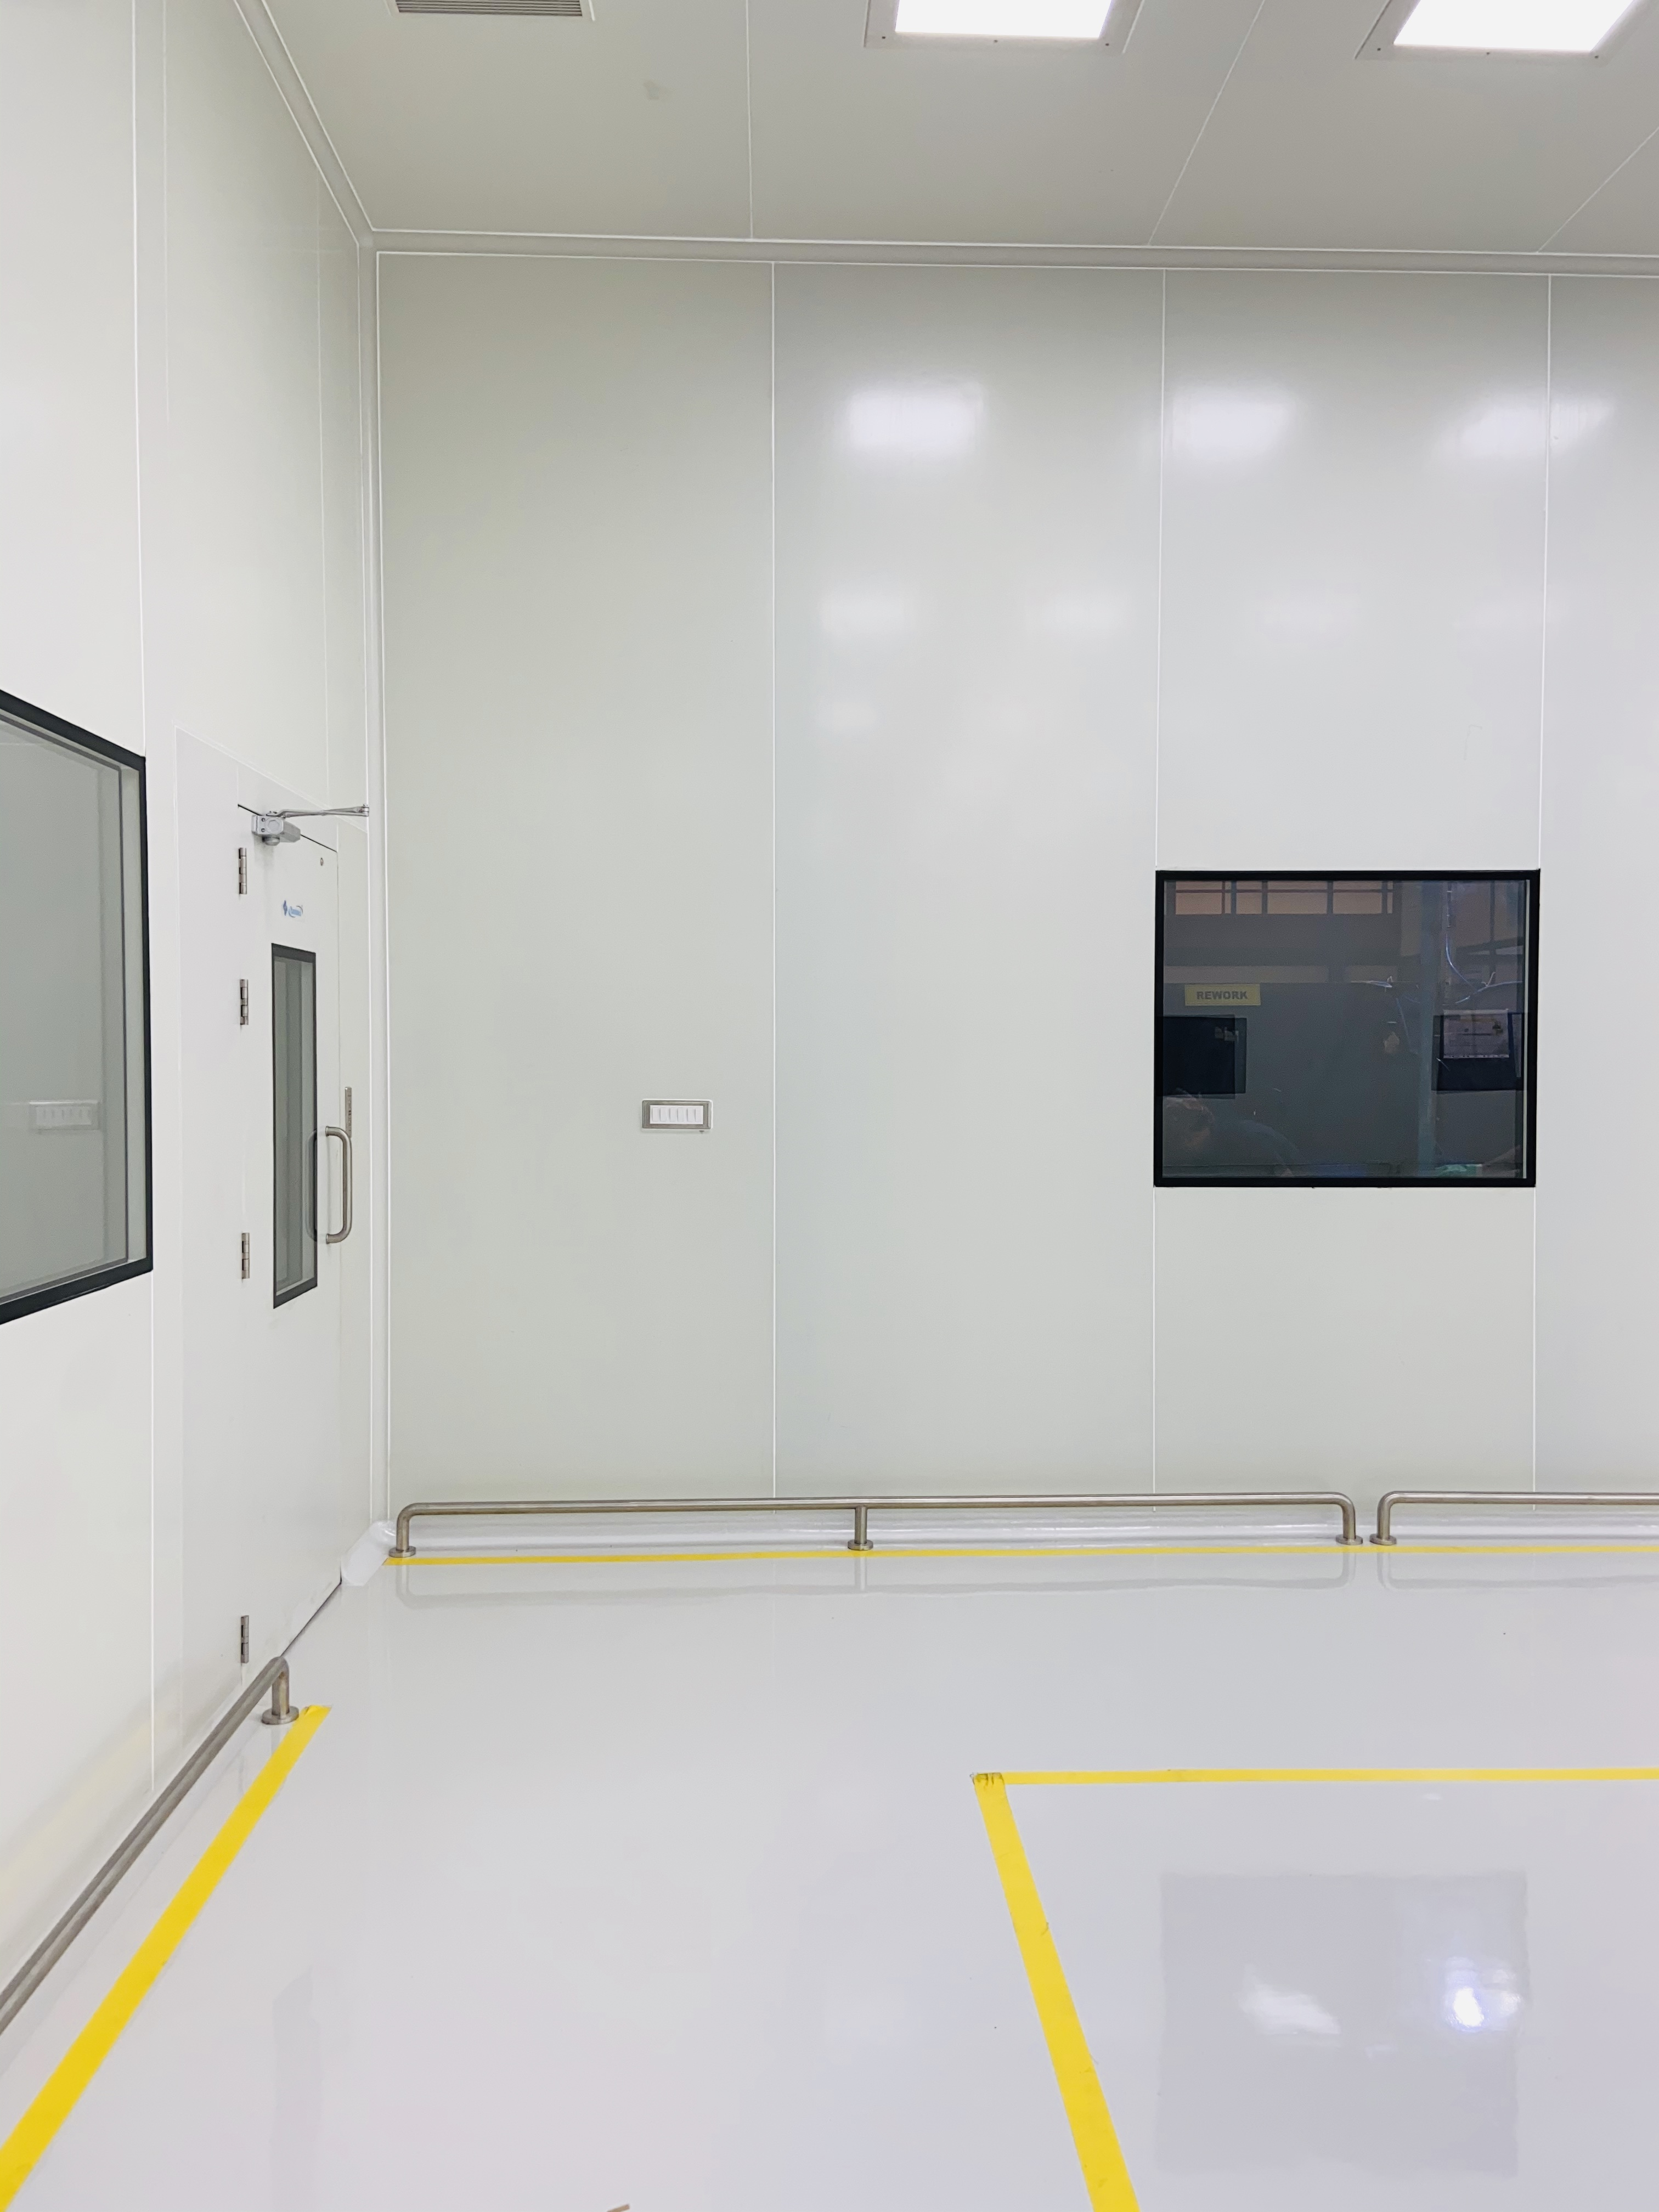 CLEAN ROOM WALL & CEILING PANEL